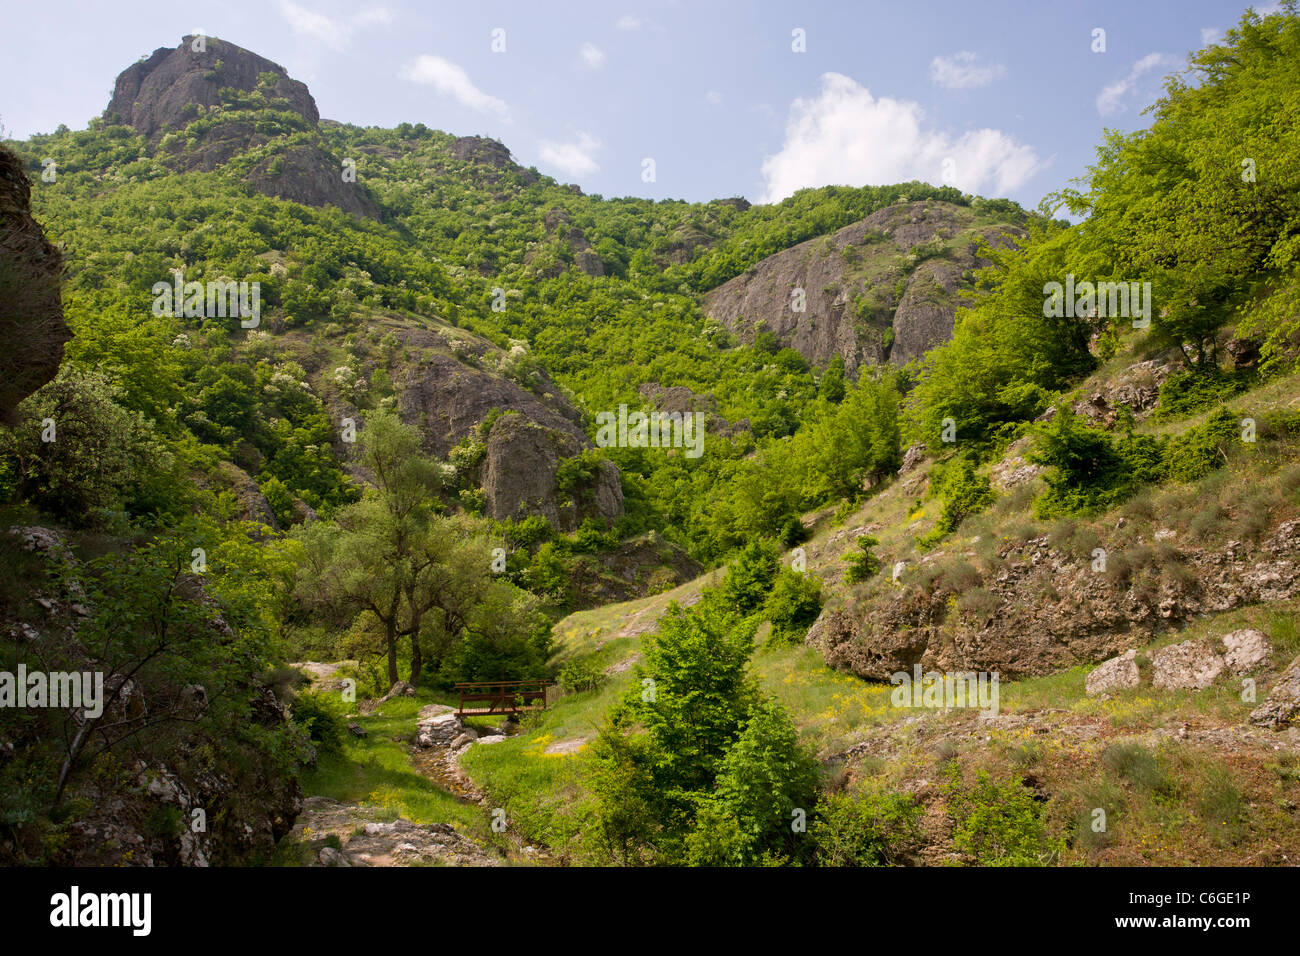 Attractive botanically-rich protected area, with Oriental Hornbeam and Manna Ash, on volcanic rock, near Rila, Bulgaria. - Stock Image